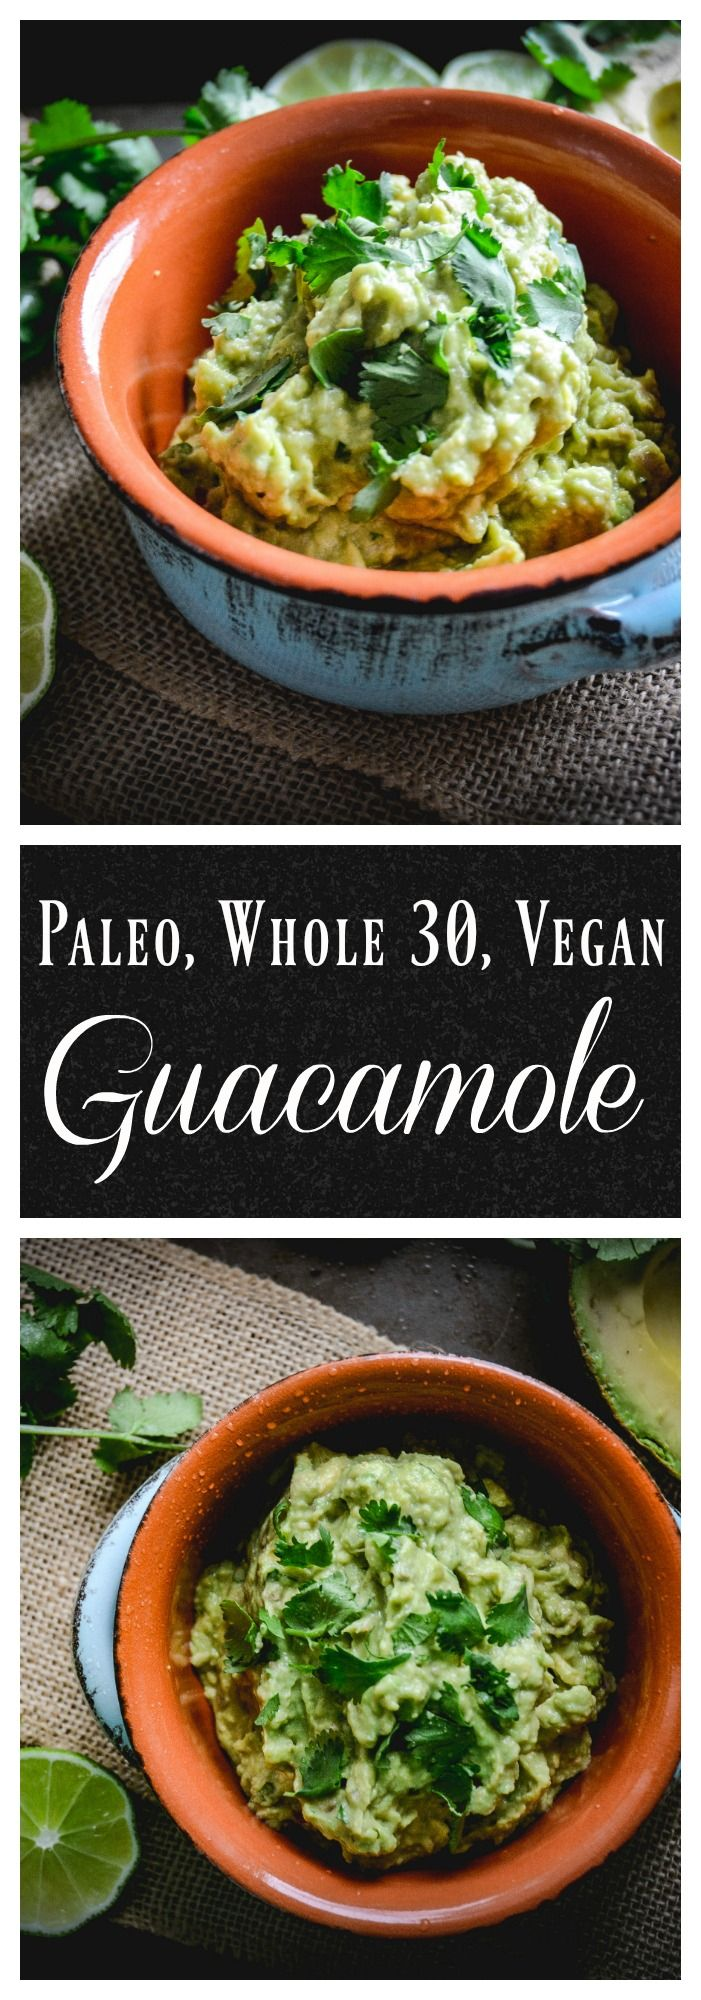 A 5 ingredient guacamole that takes 5 minutes to make. Simple, delicious, vegan, paleo and whole 30 approved. Perfect for a party or anytime. #guacamole, #whole30, #vegan, #paleo, #avocado